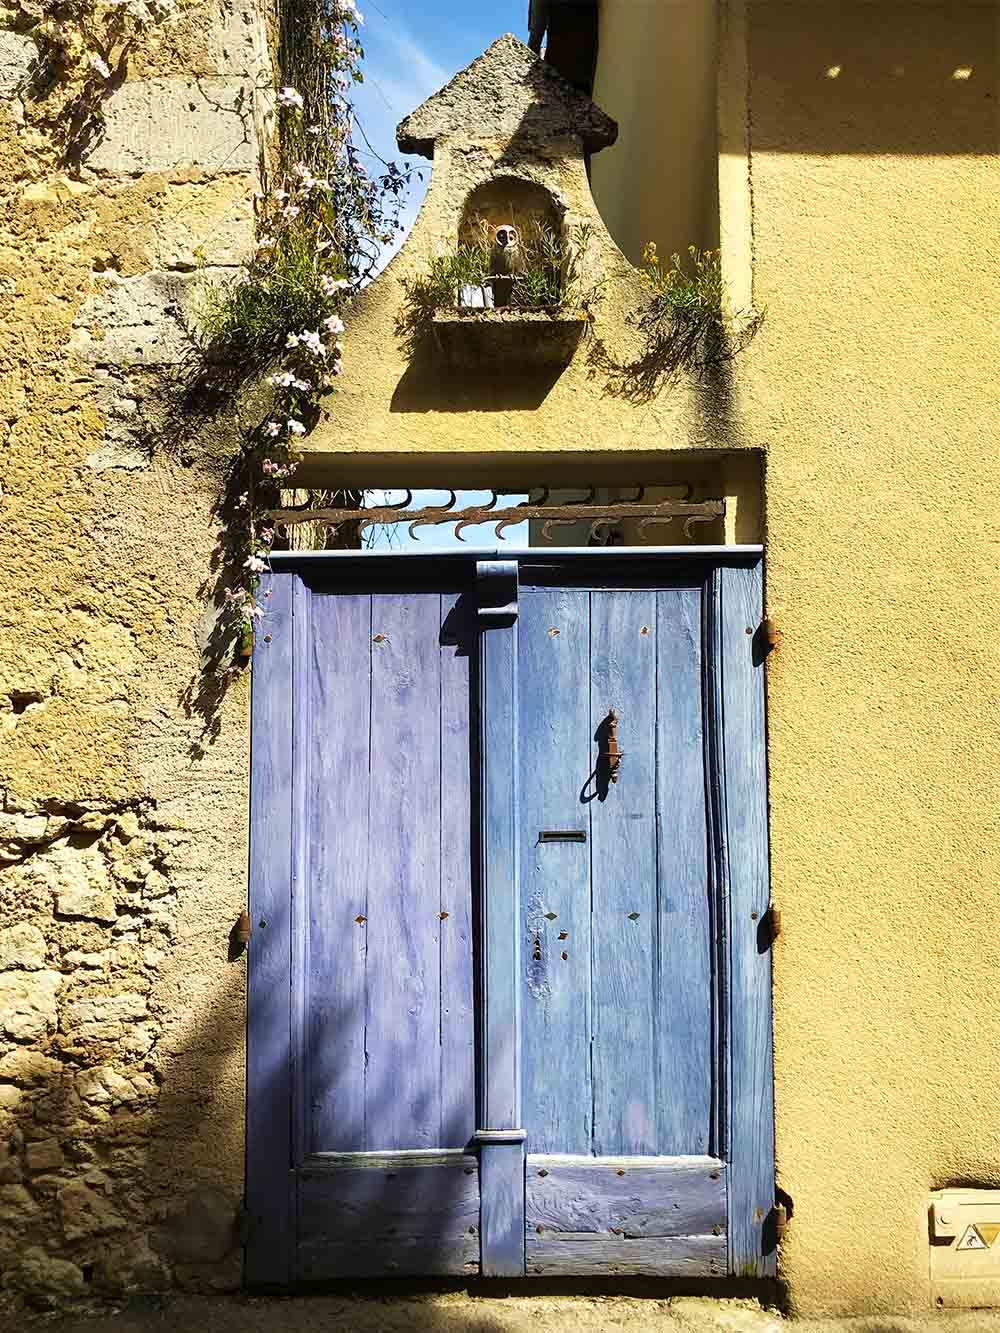 We went for a stroll through the back streets of Lectoure, a very ancient city which was settled and fortified in the Iron Age. I loved this rustic lavender front door, set against the limestone walls.